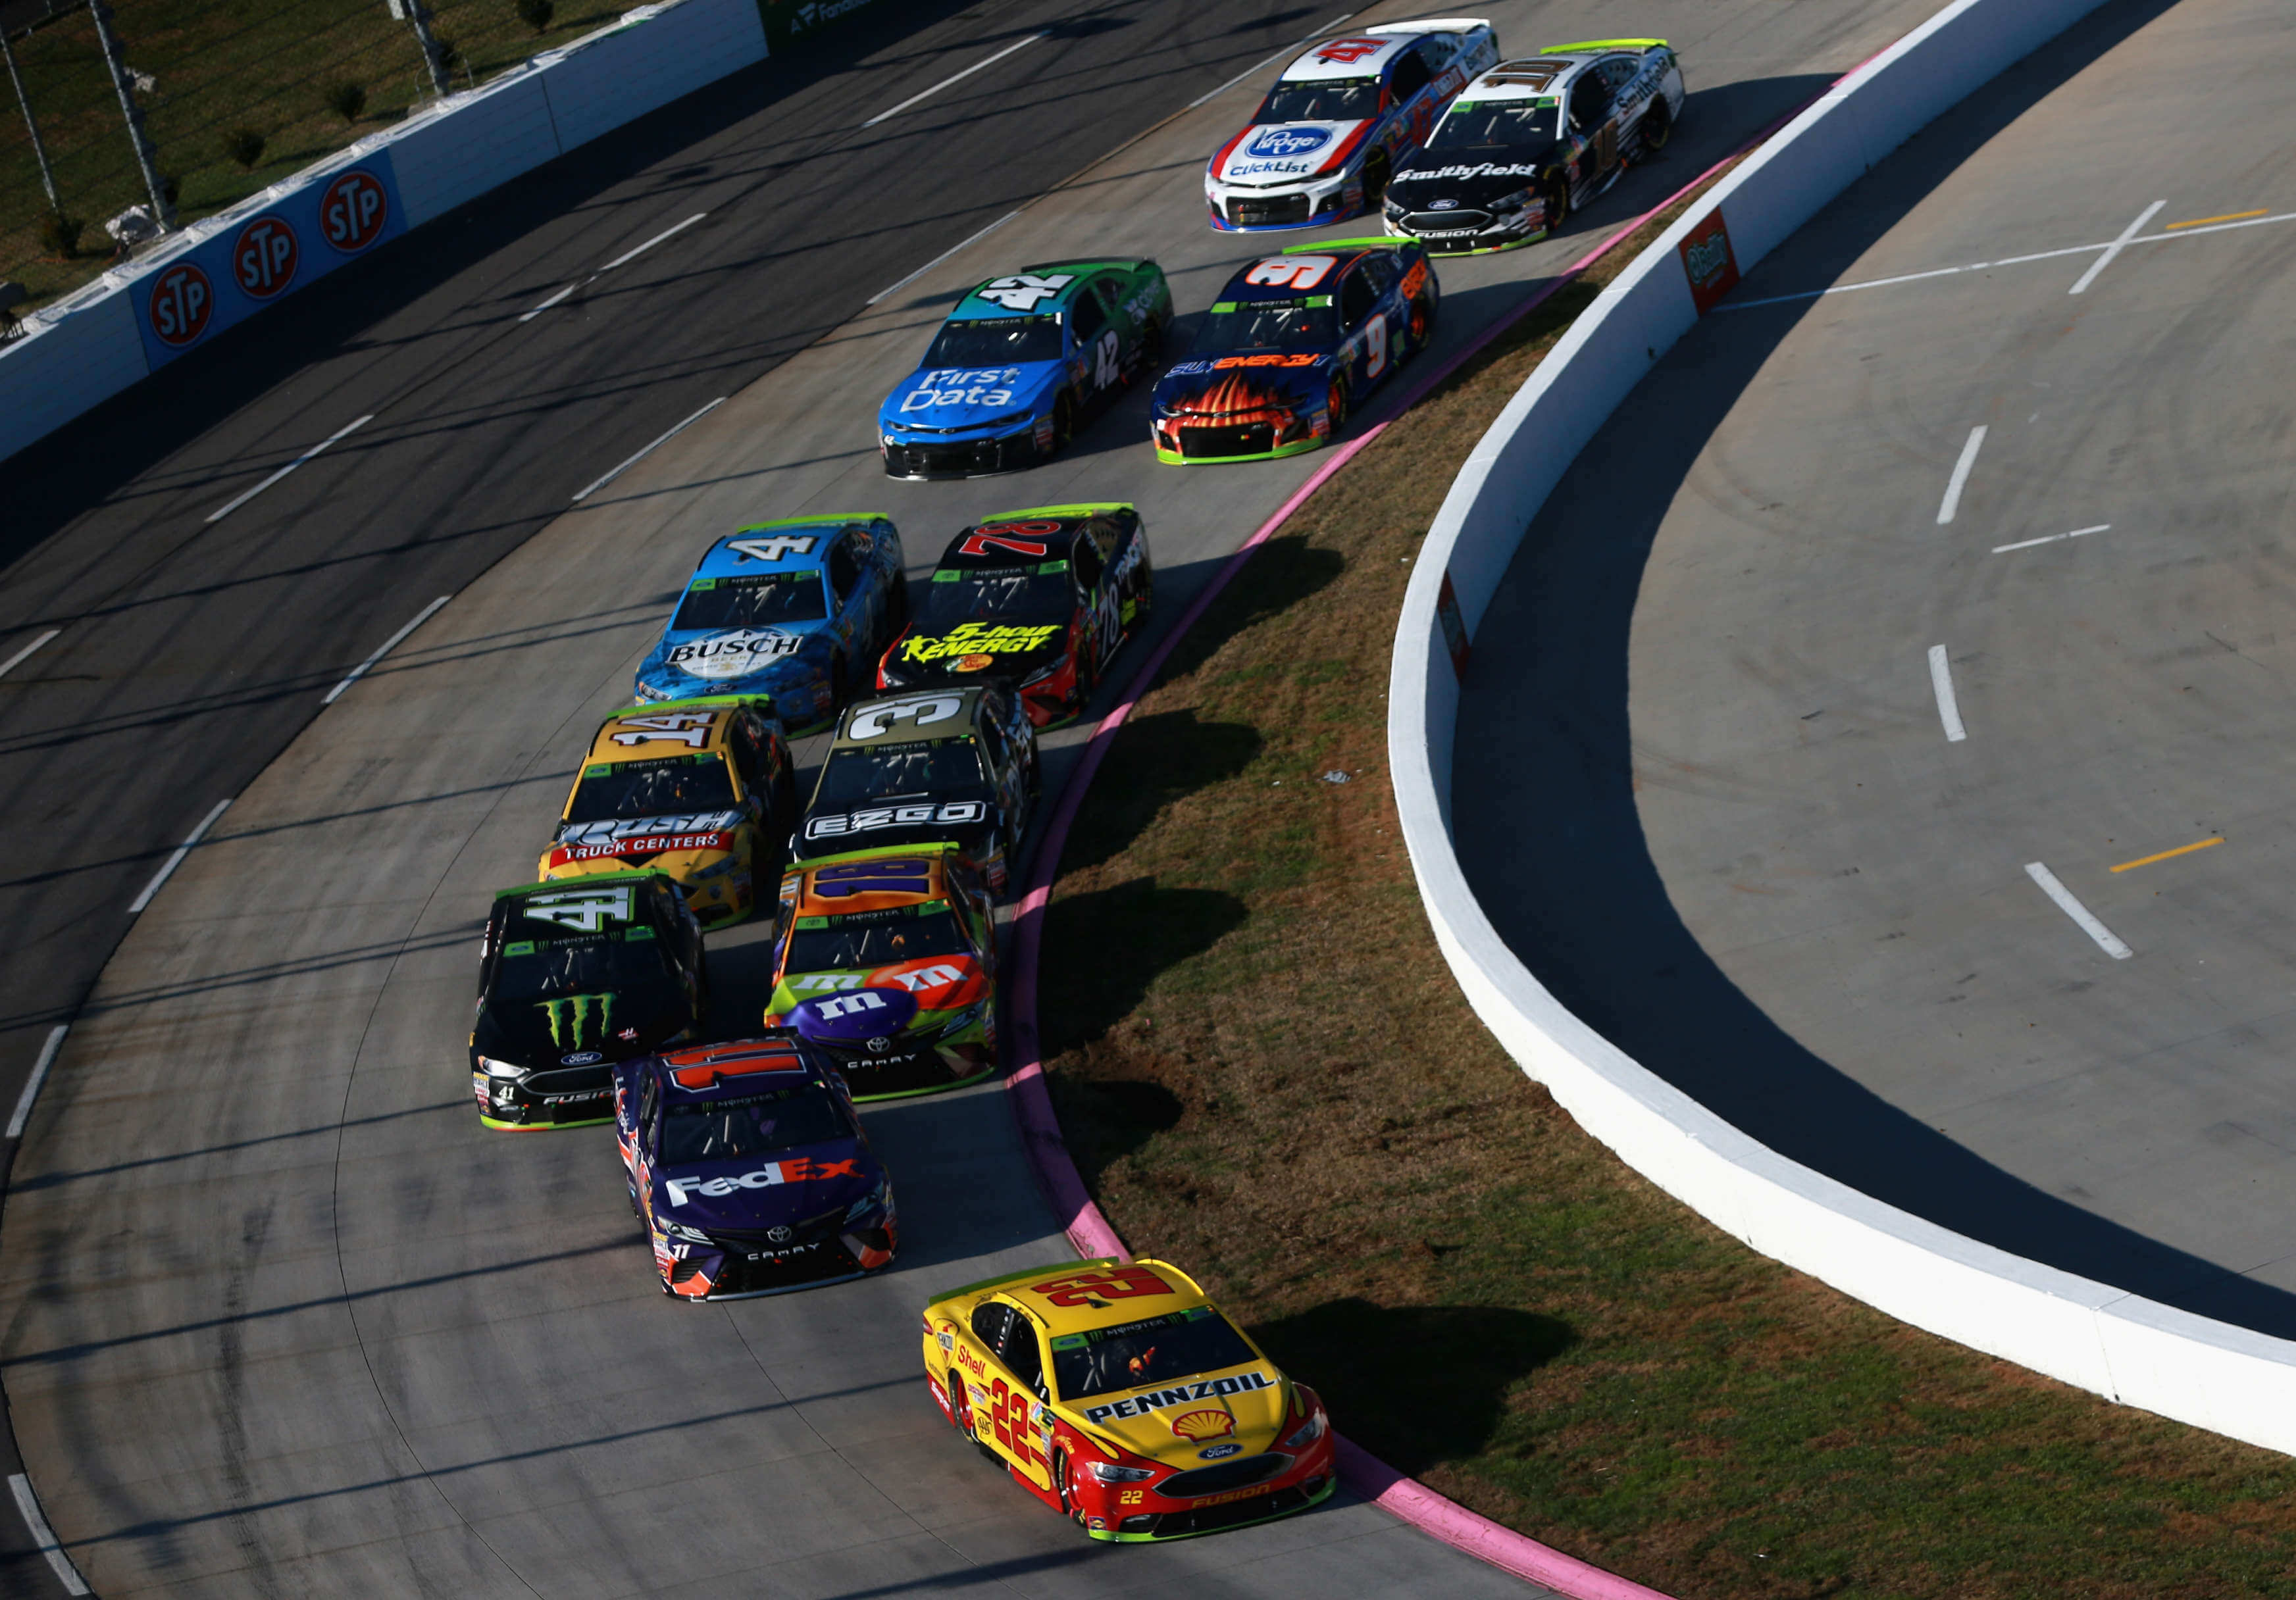 Joey Logano leads Denny Hamlin, Kyle Busch and Kurt Busch, Ryan Newman, Clint Bowyer, Martin Truex Jr, Kevin Harvick and CHase Elliott at Martinsville Speedway - NASCAR